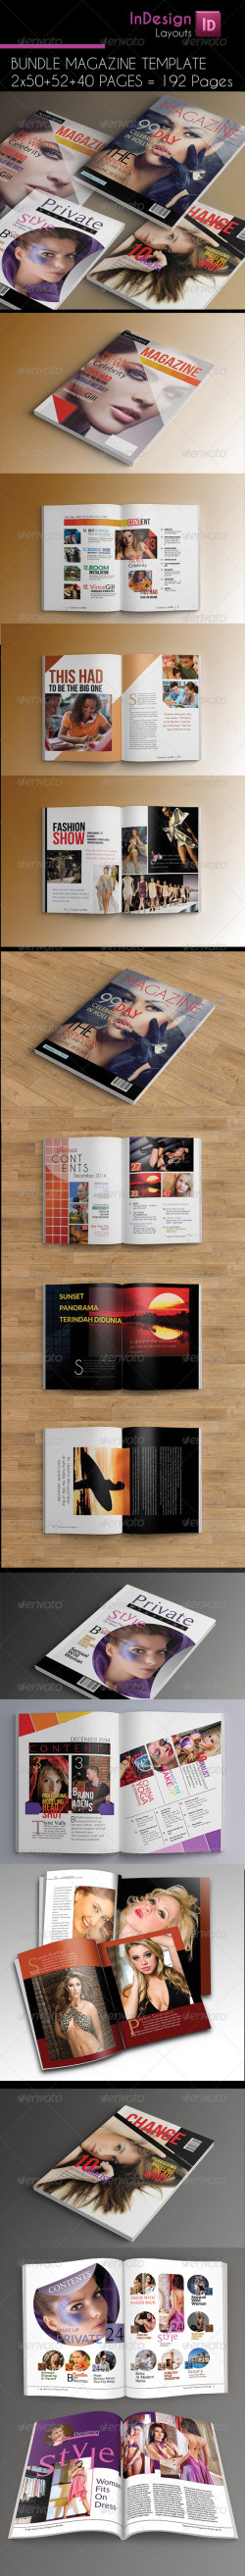 Bundle_MagzTemplate